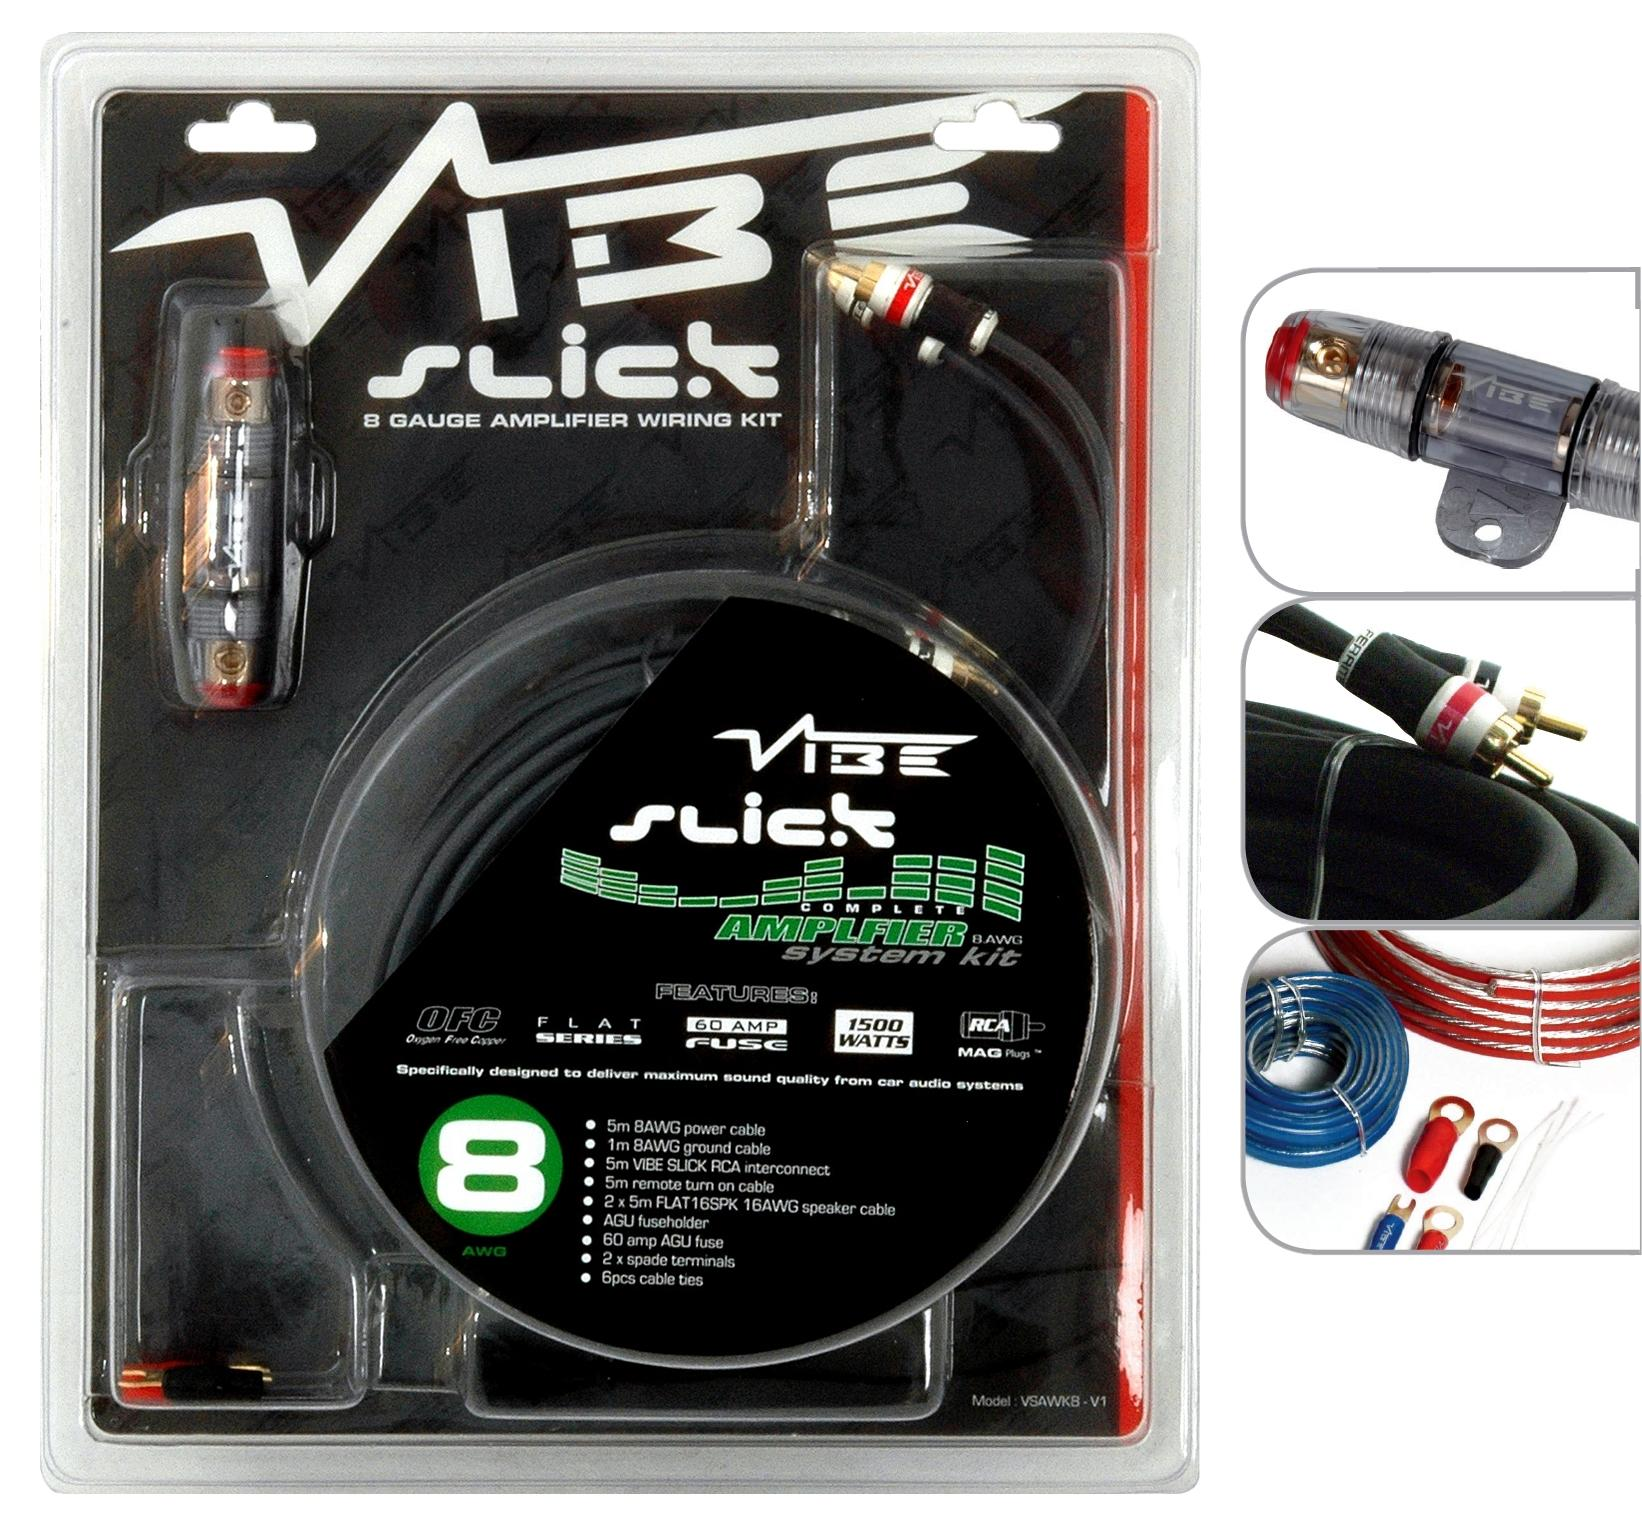 Vibe Slick 8 Gauge 1500W Amp Amplifier Wiring Kit / Sub Kit | eBay